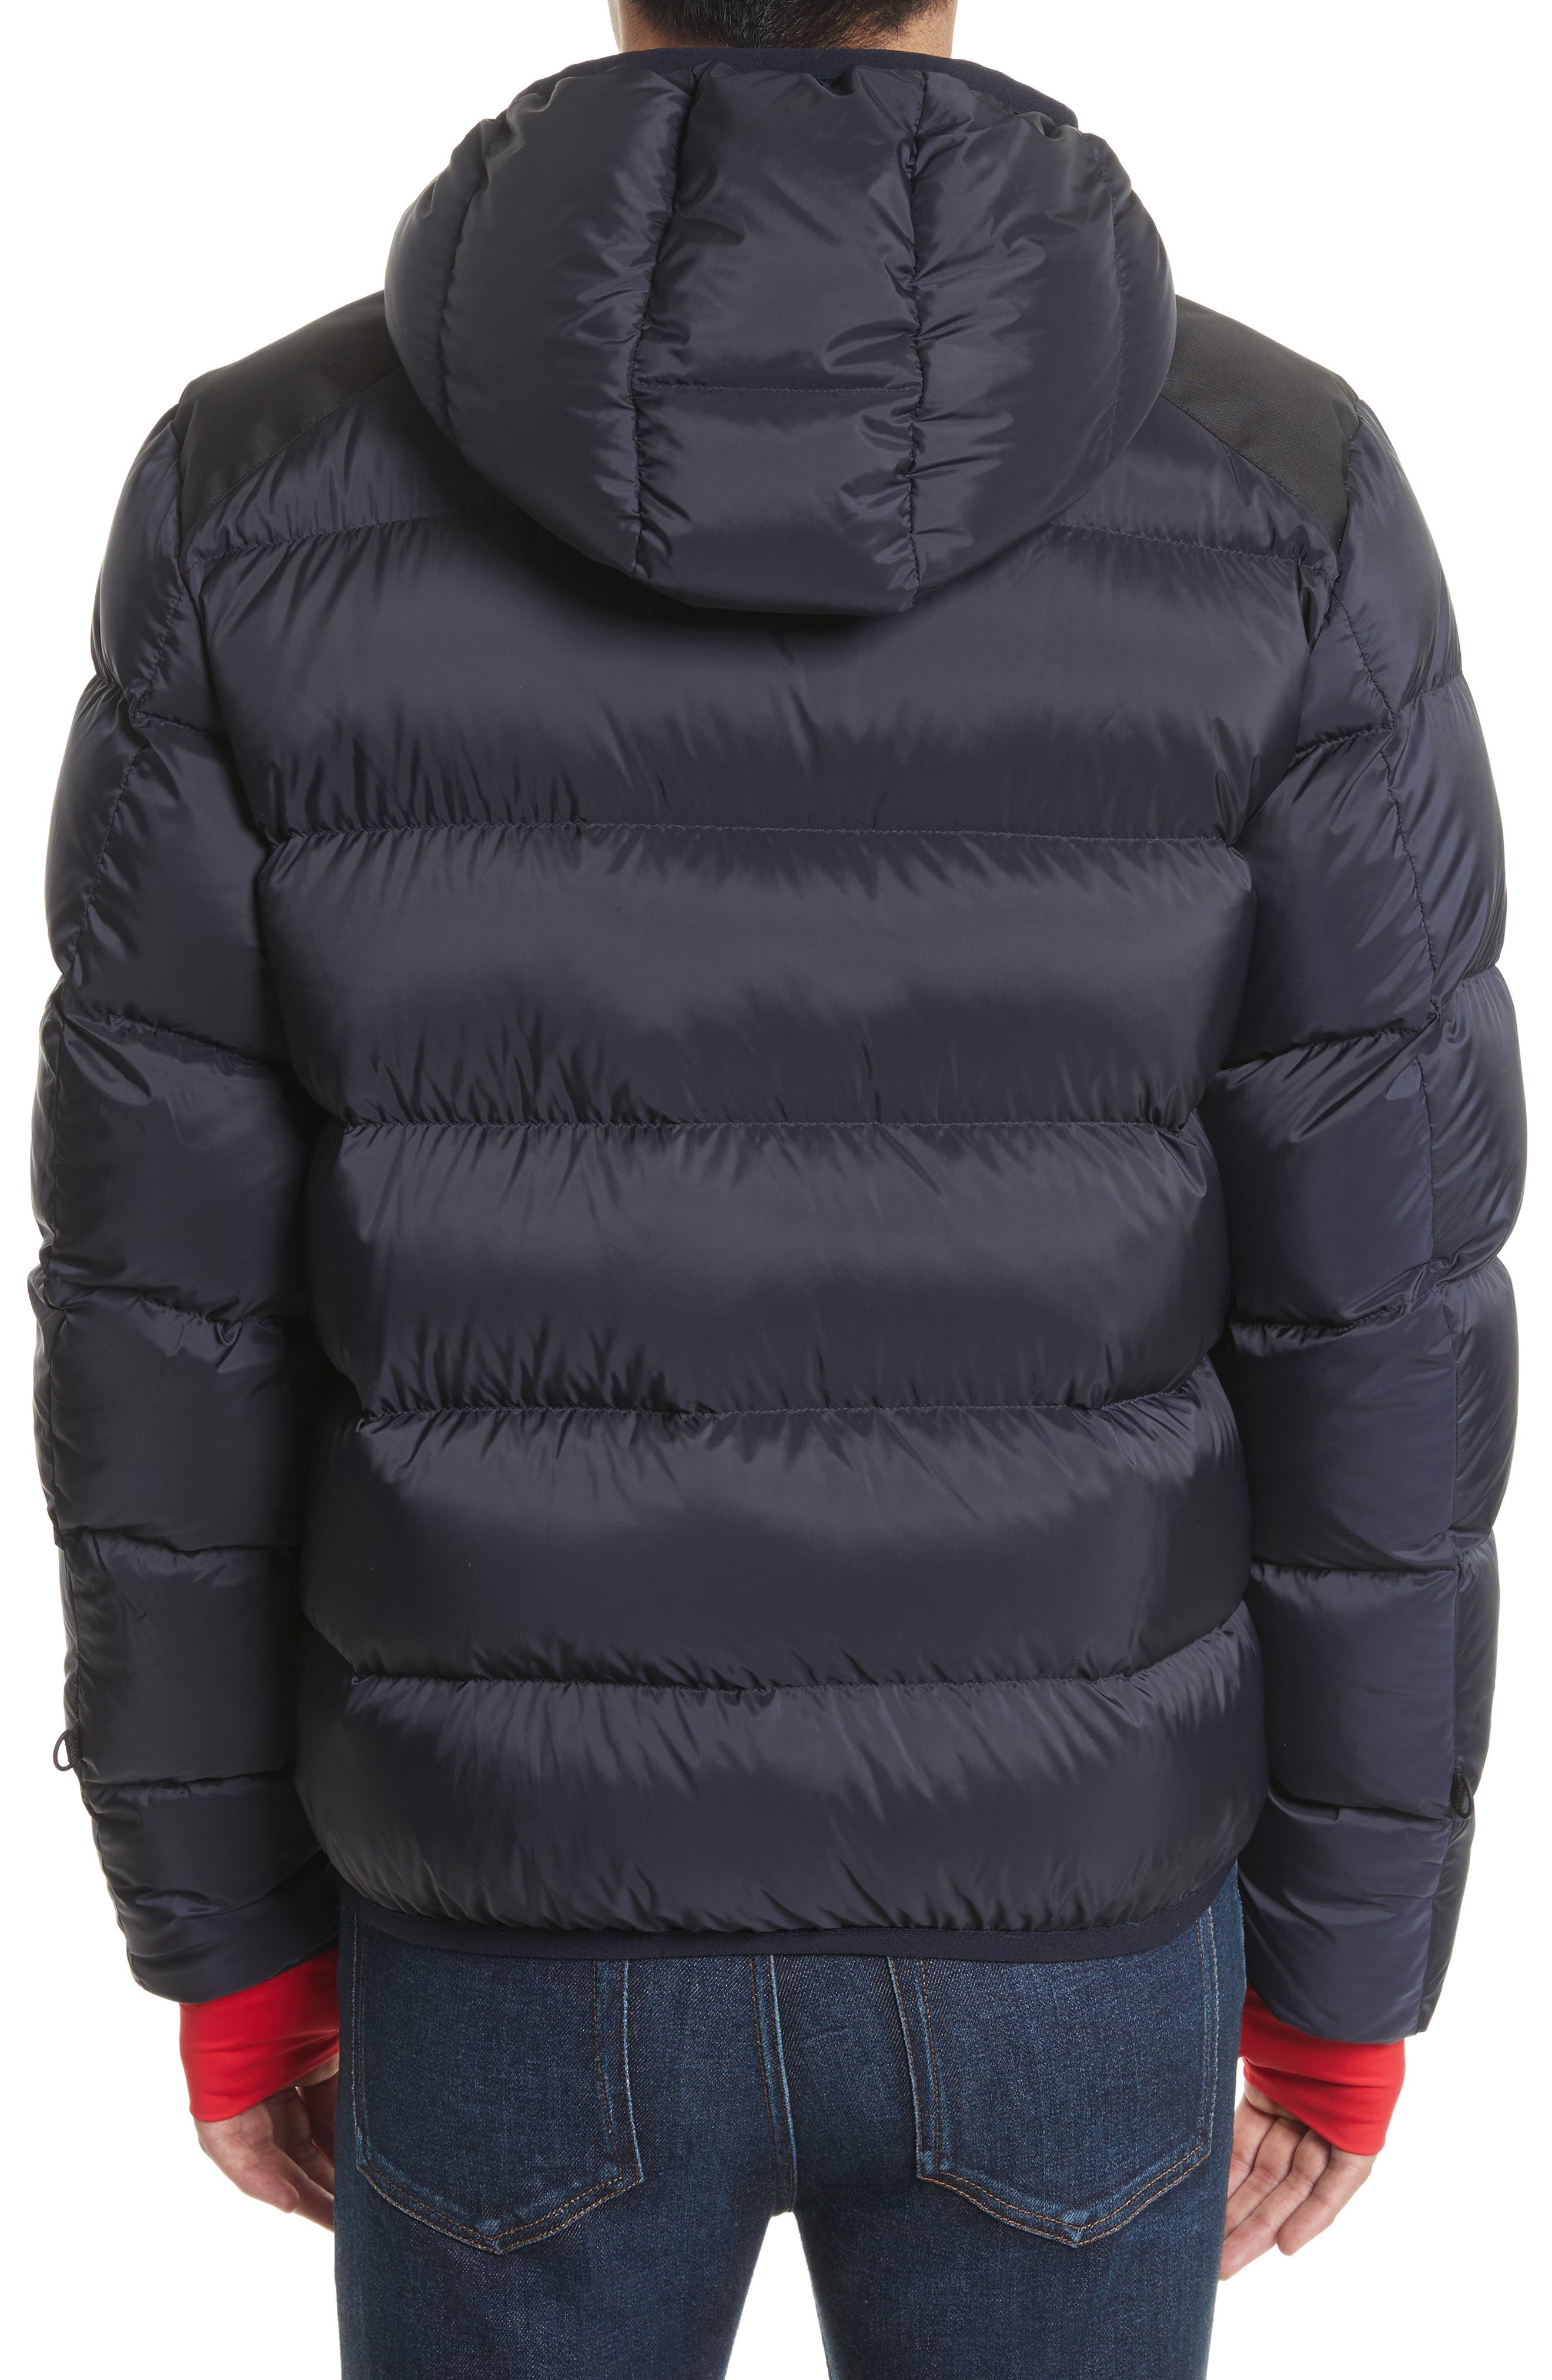 Grenoble Hintertux Hooded Down Jacket,                             Alternate thumbnail 2, color,                             Navy/ Red